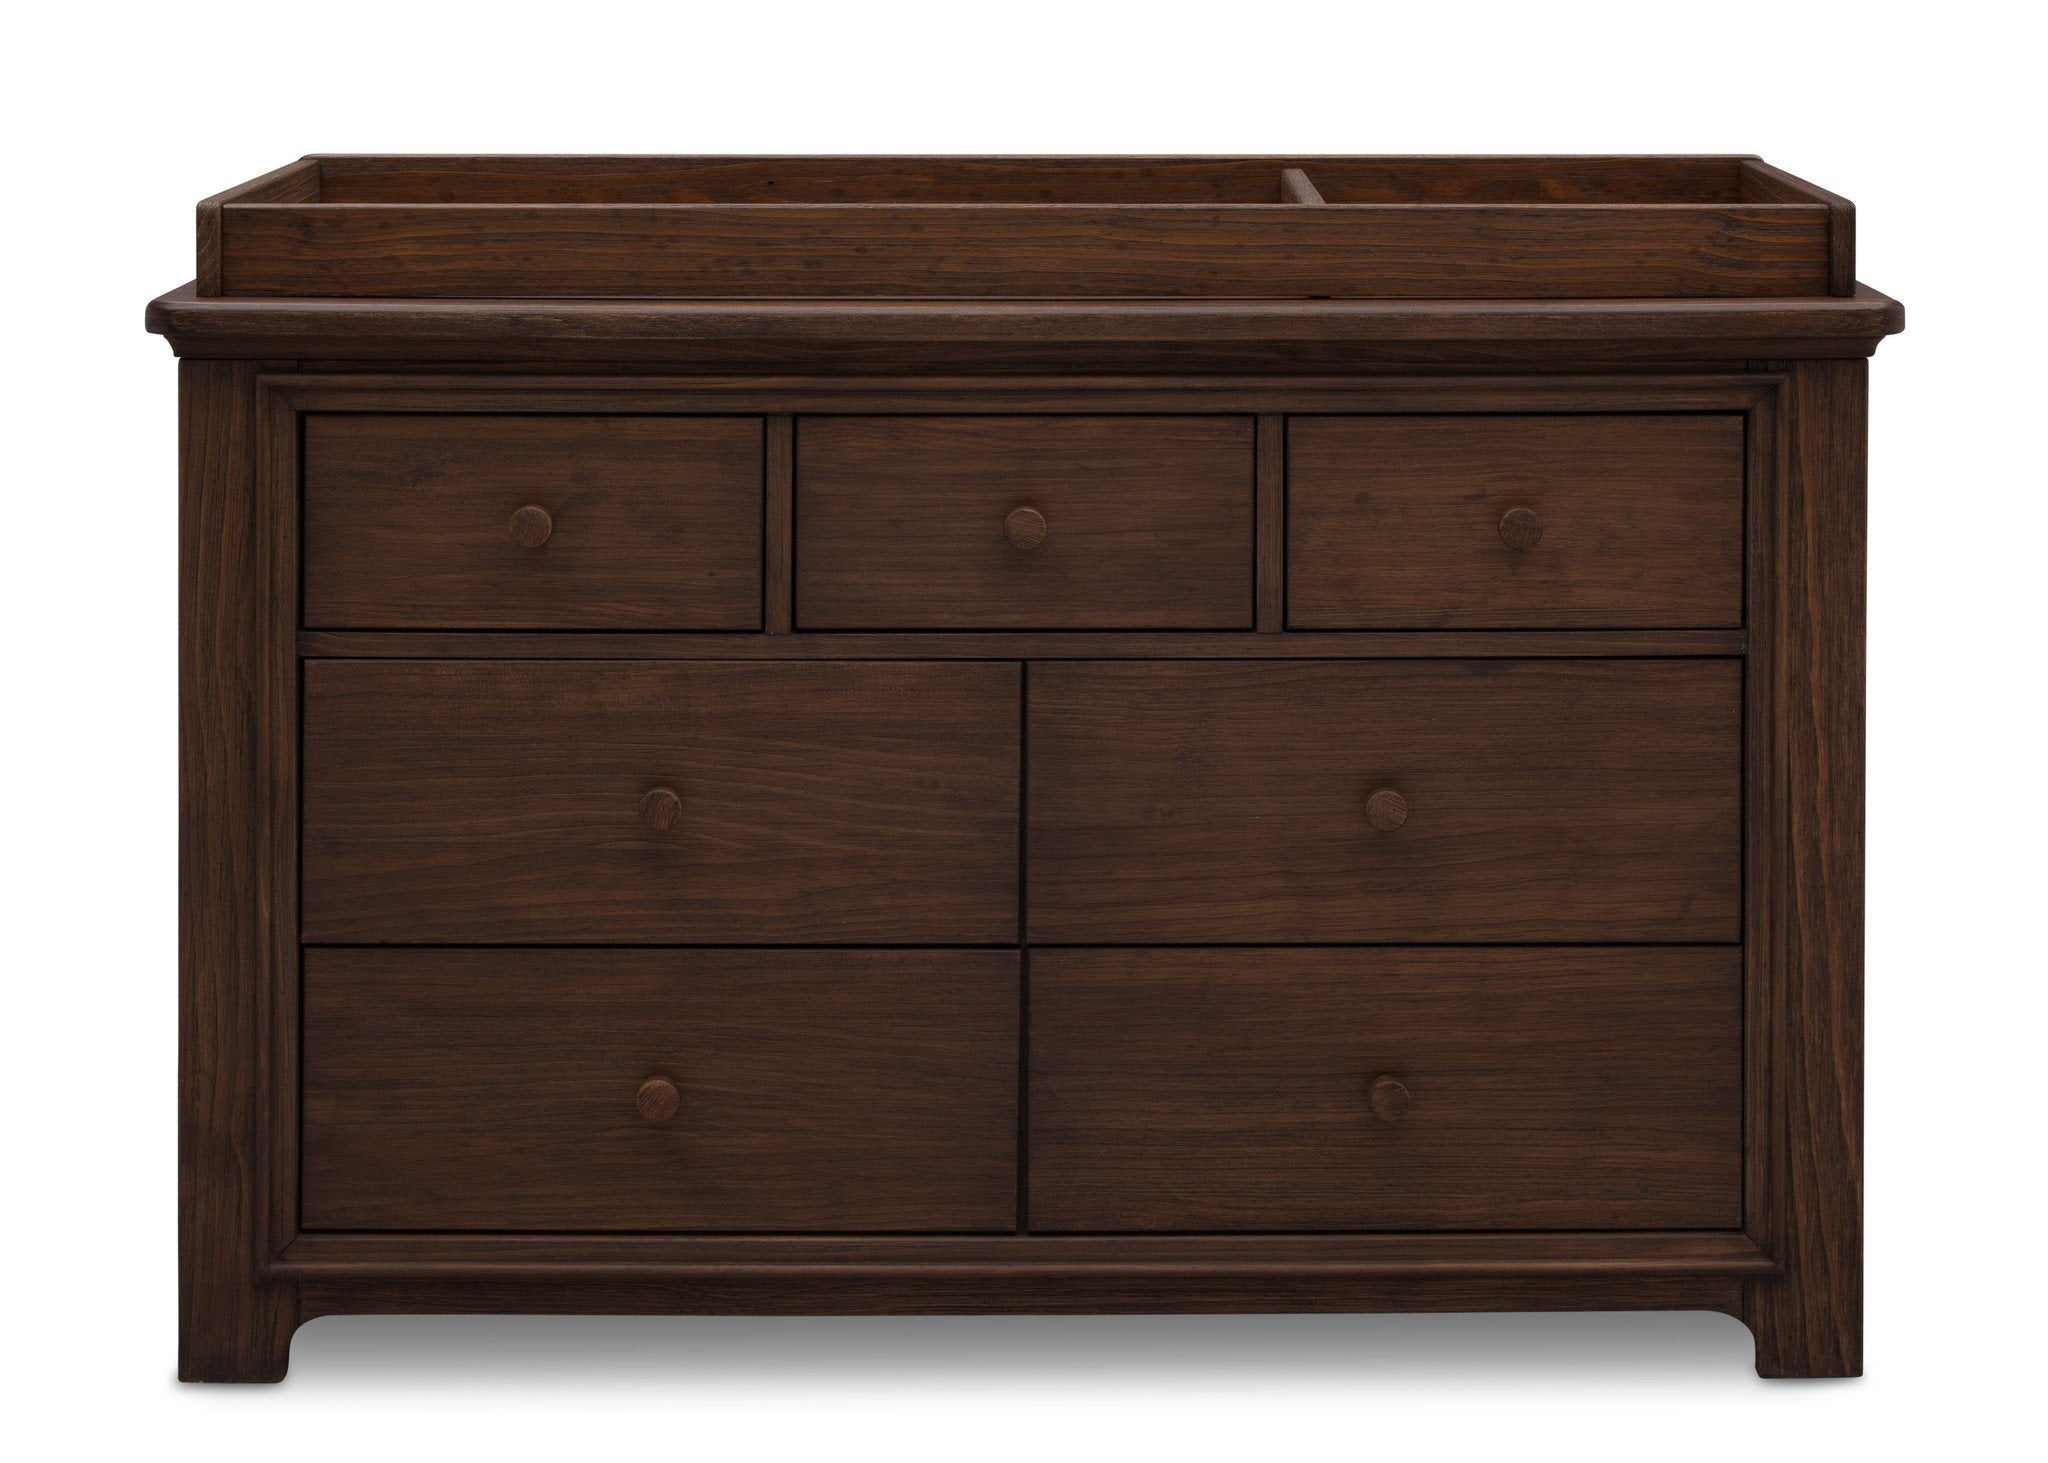 Serta Rustic Oak (229) Langley 7 Drawer Dresser, Front View with Top c1c